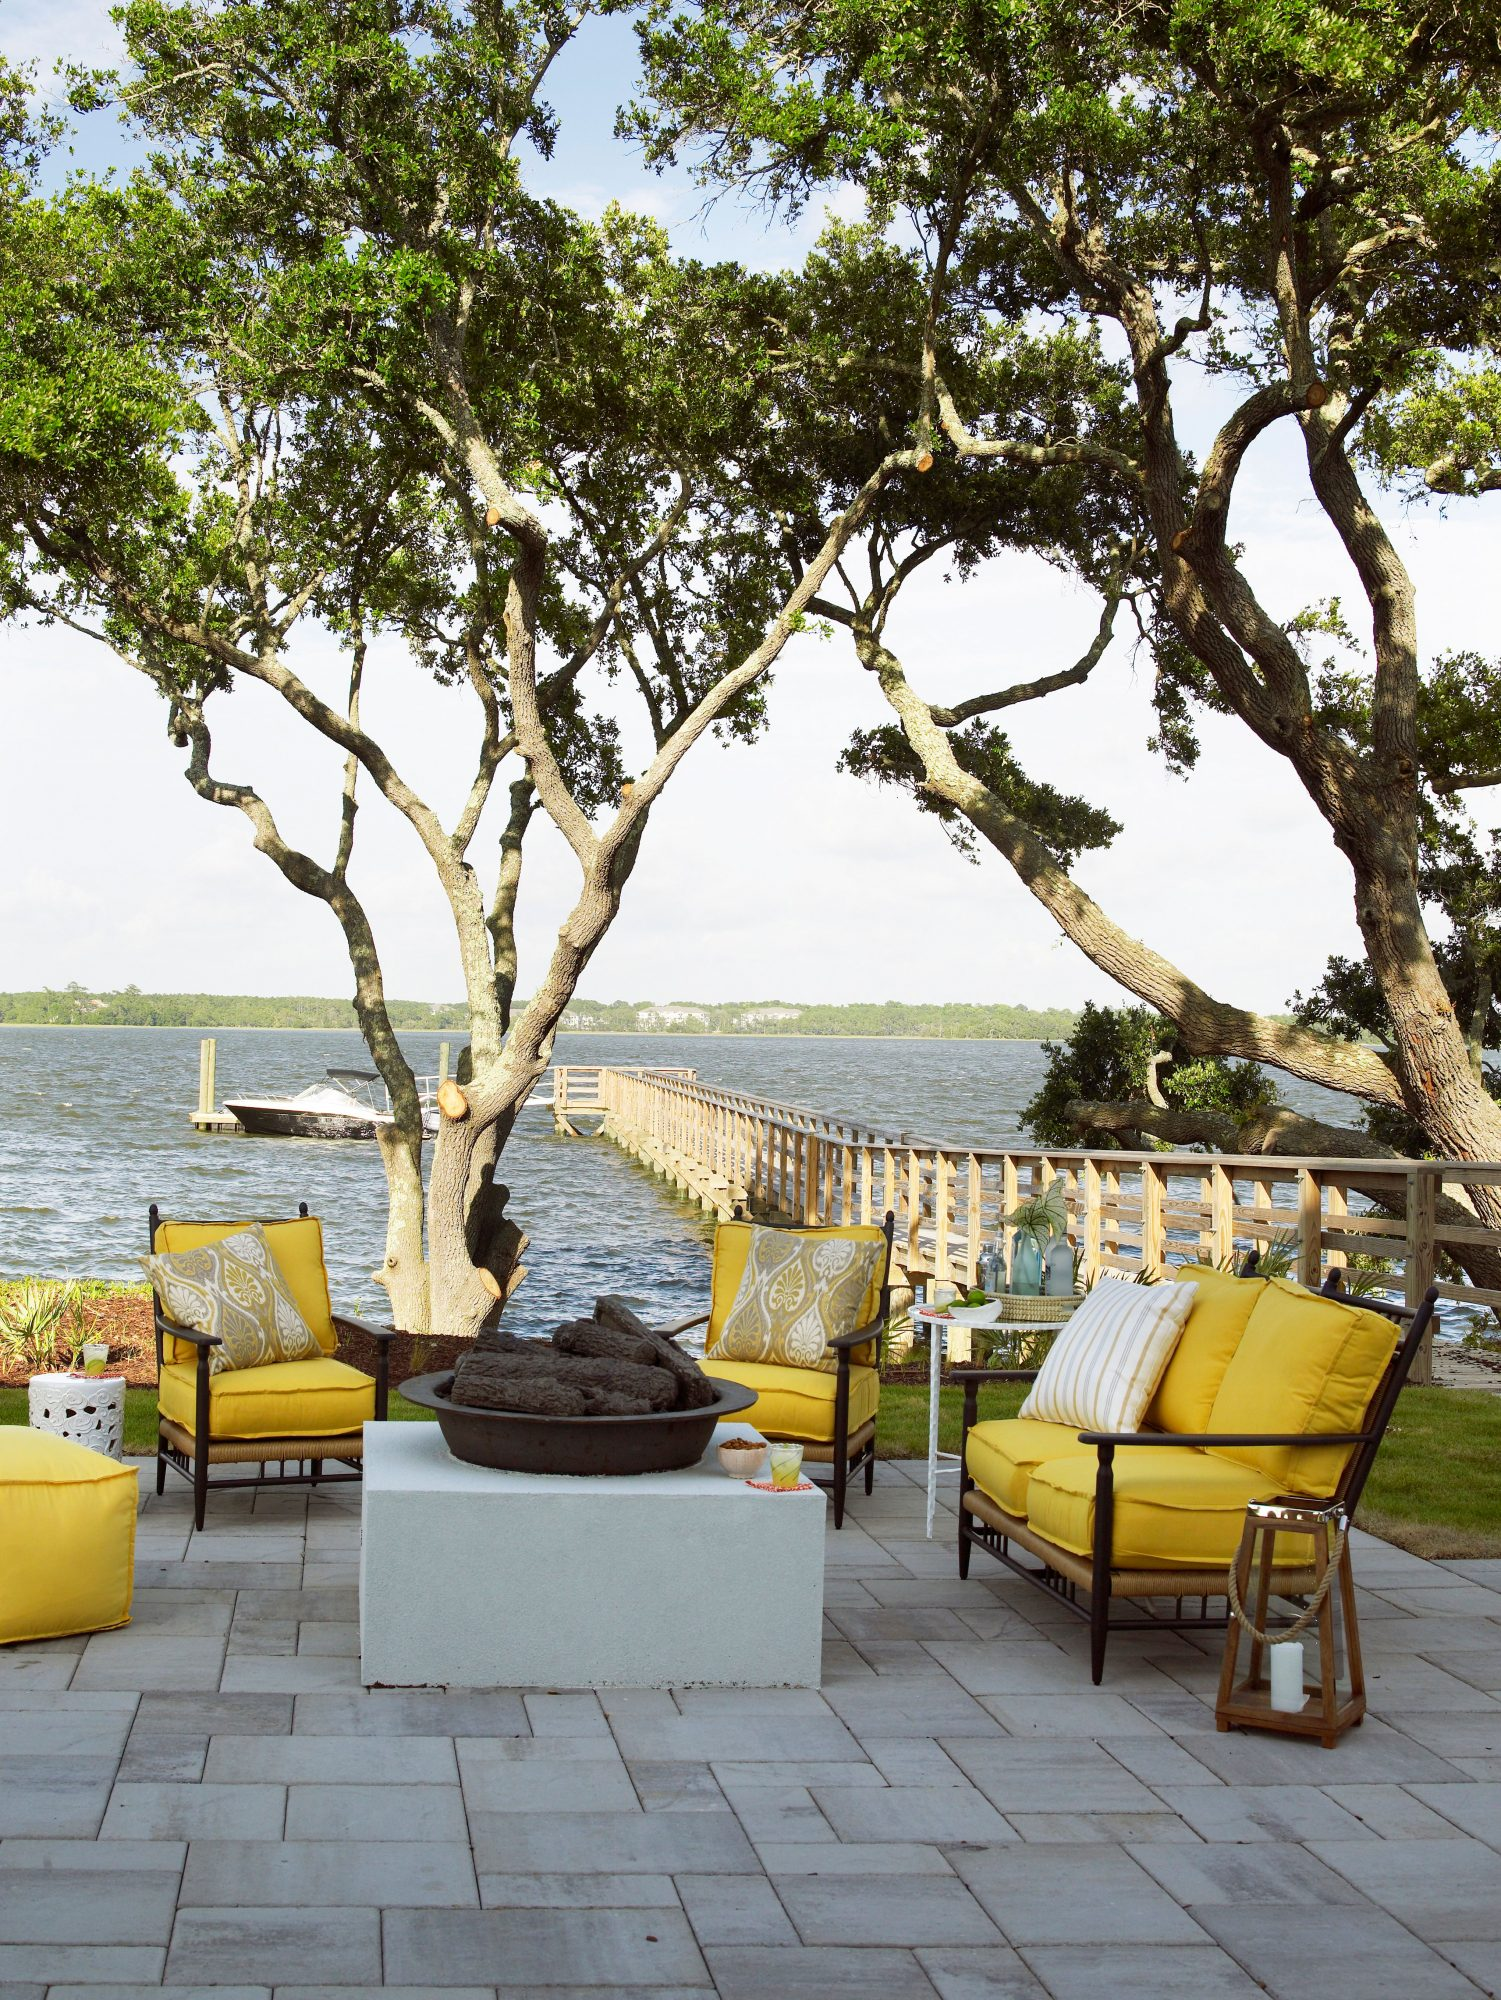 The patio of the Daniel Island Showhouse is the perfect outdoor hangout space along the Wando river, with plenty of cushy seating and a fun fire pit.